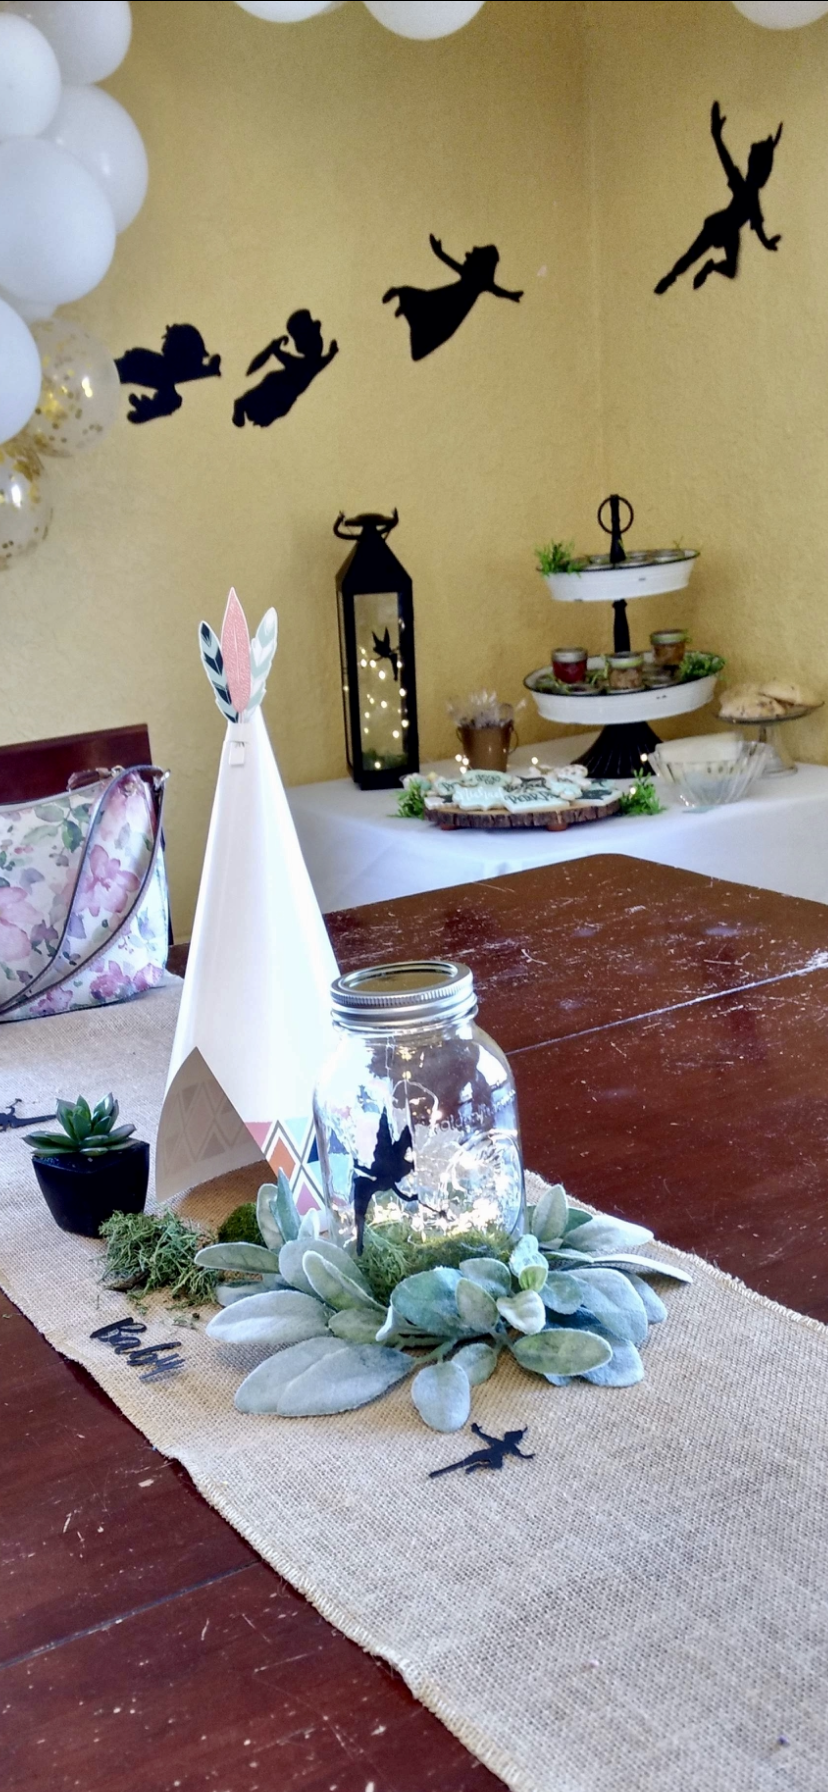 Neverland Teepee Table Decor For Peter Pan Party Boy Birthday Decorations Boy Baby Shower Themes Peter Pan Party